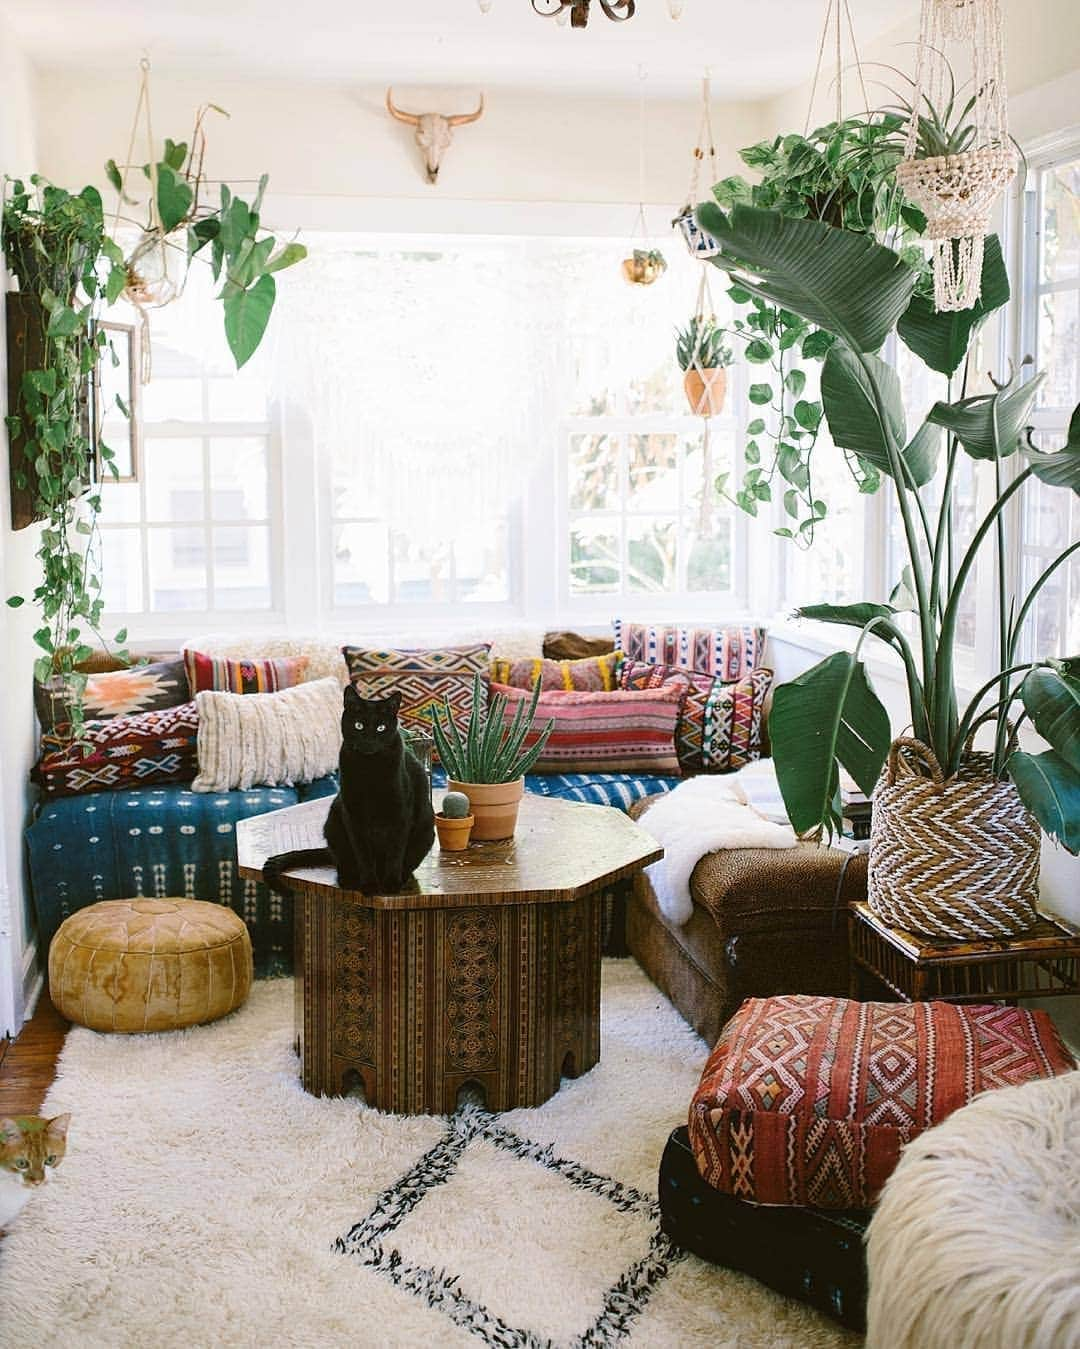 Bohemian Style In Australian Home Decor Ideas: Your Guide To The Most Popular Interior Design Styles